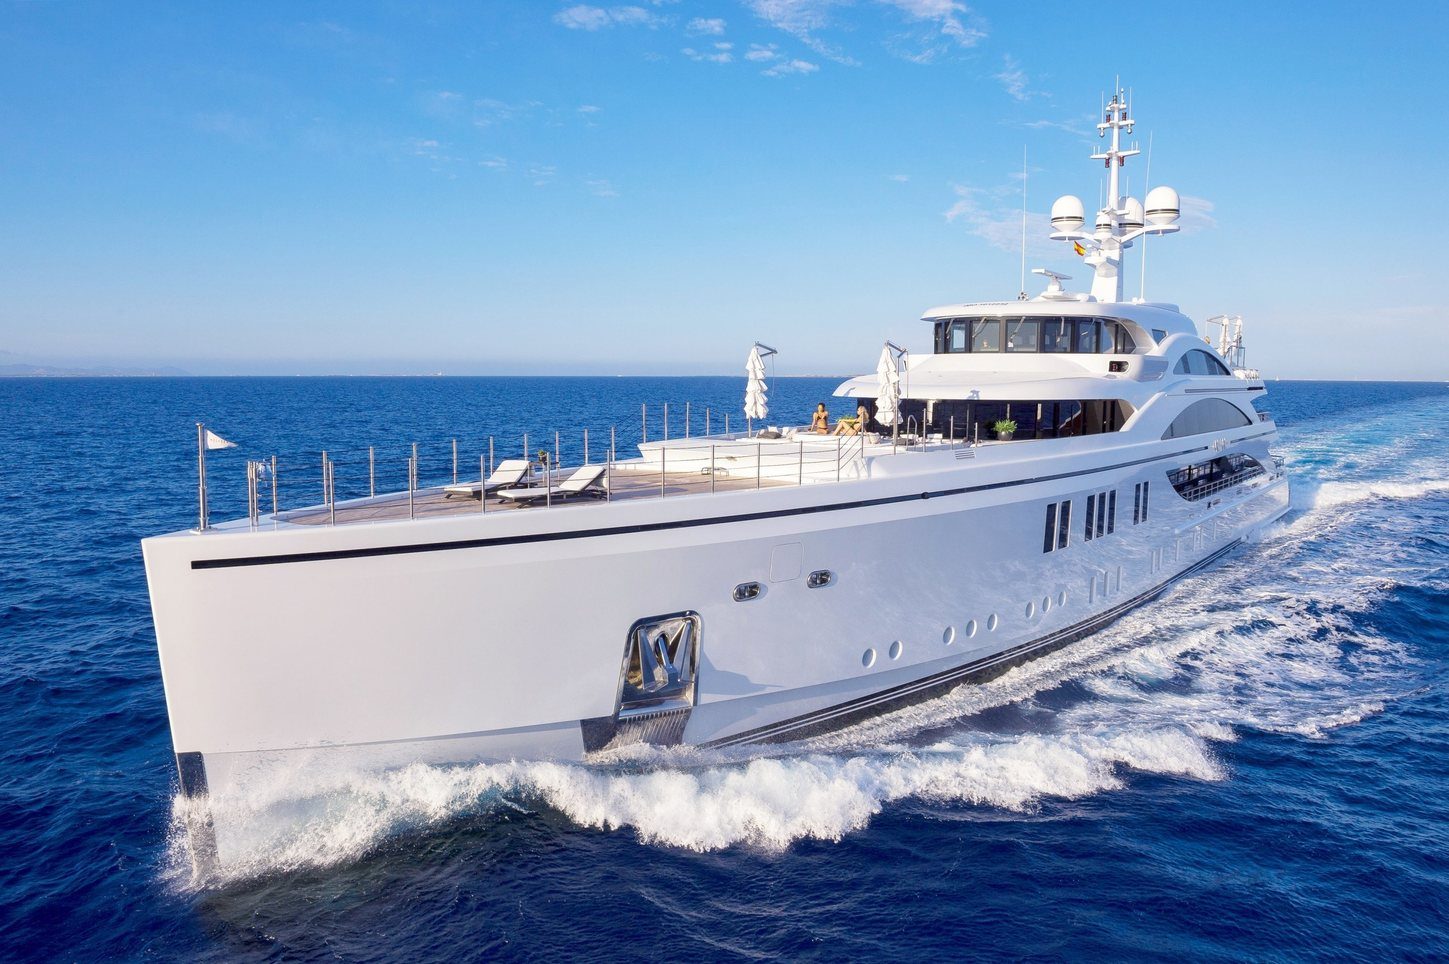 superyacht 11/11 underway on a private yacht charter